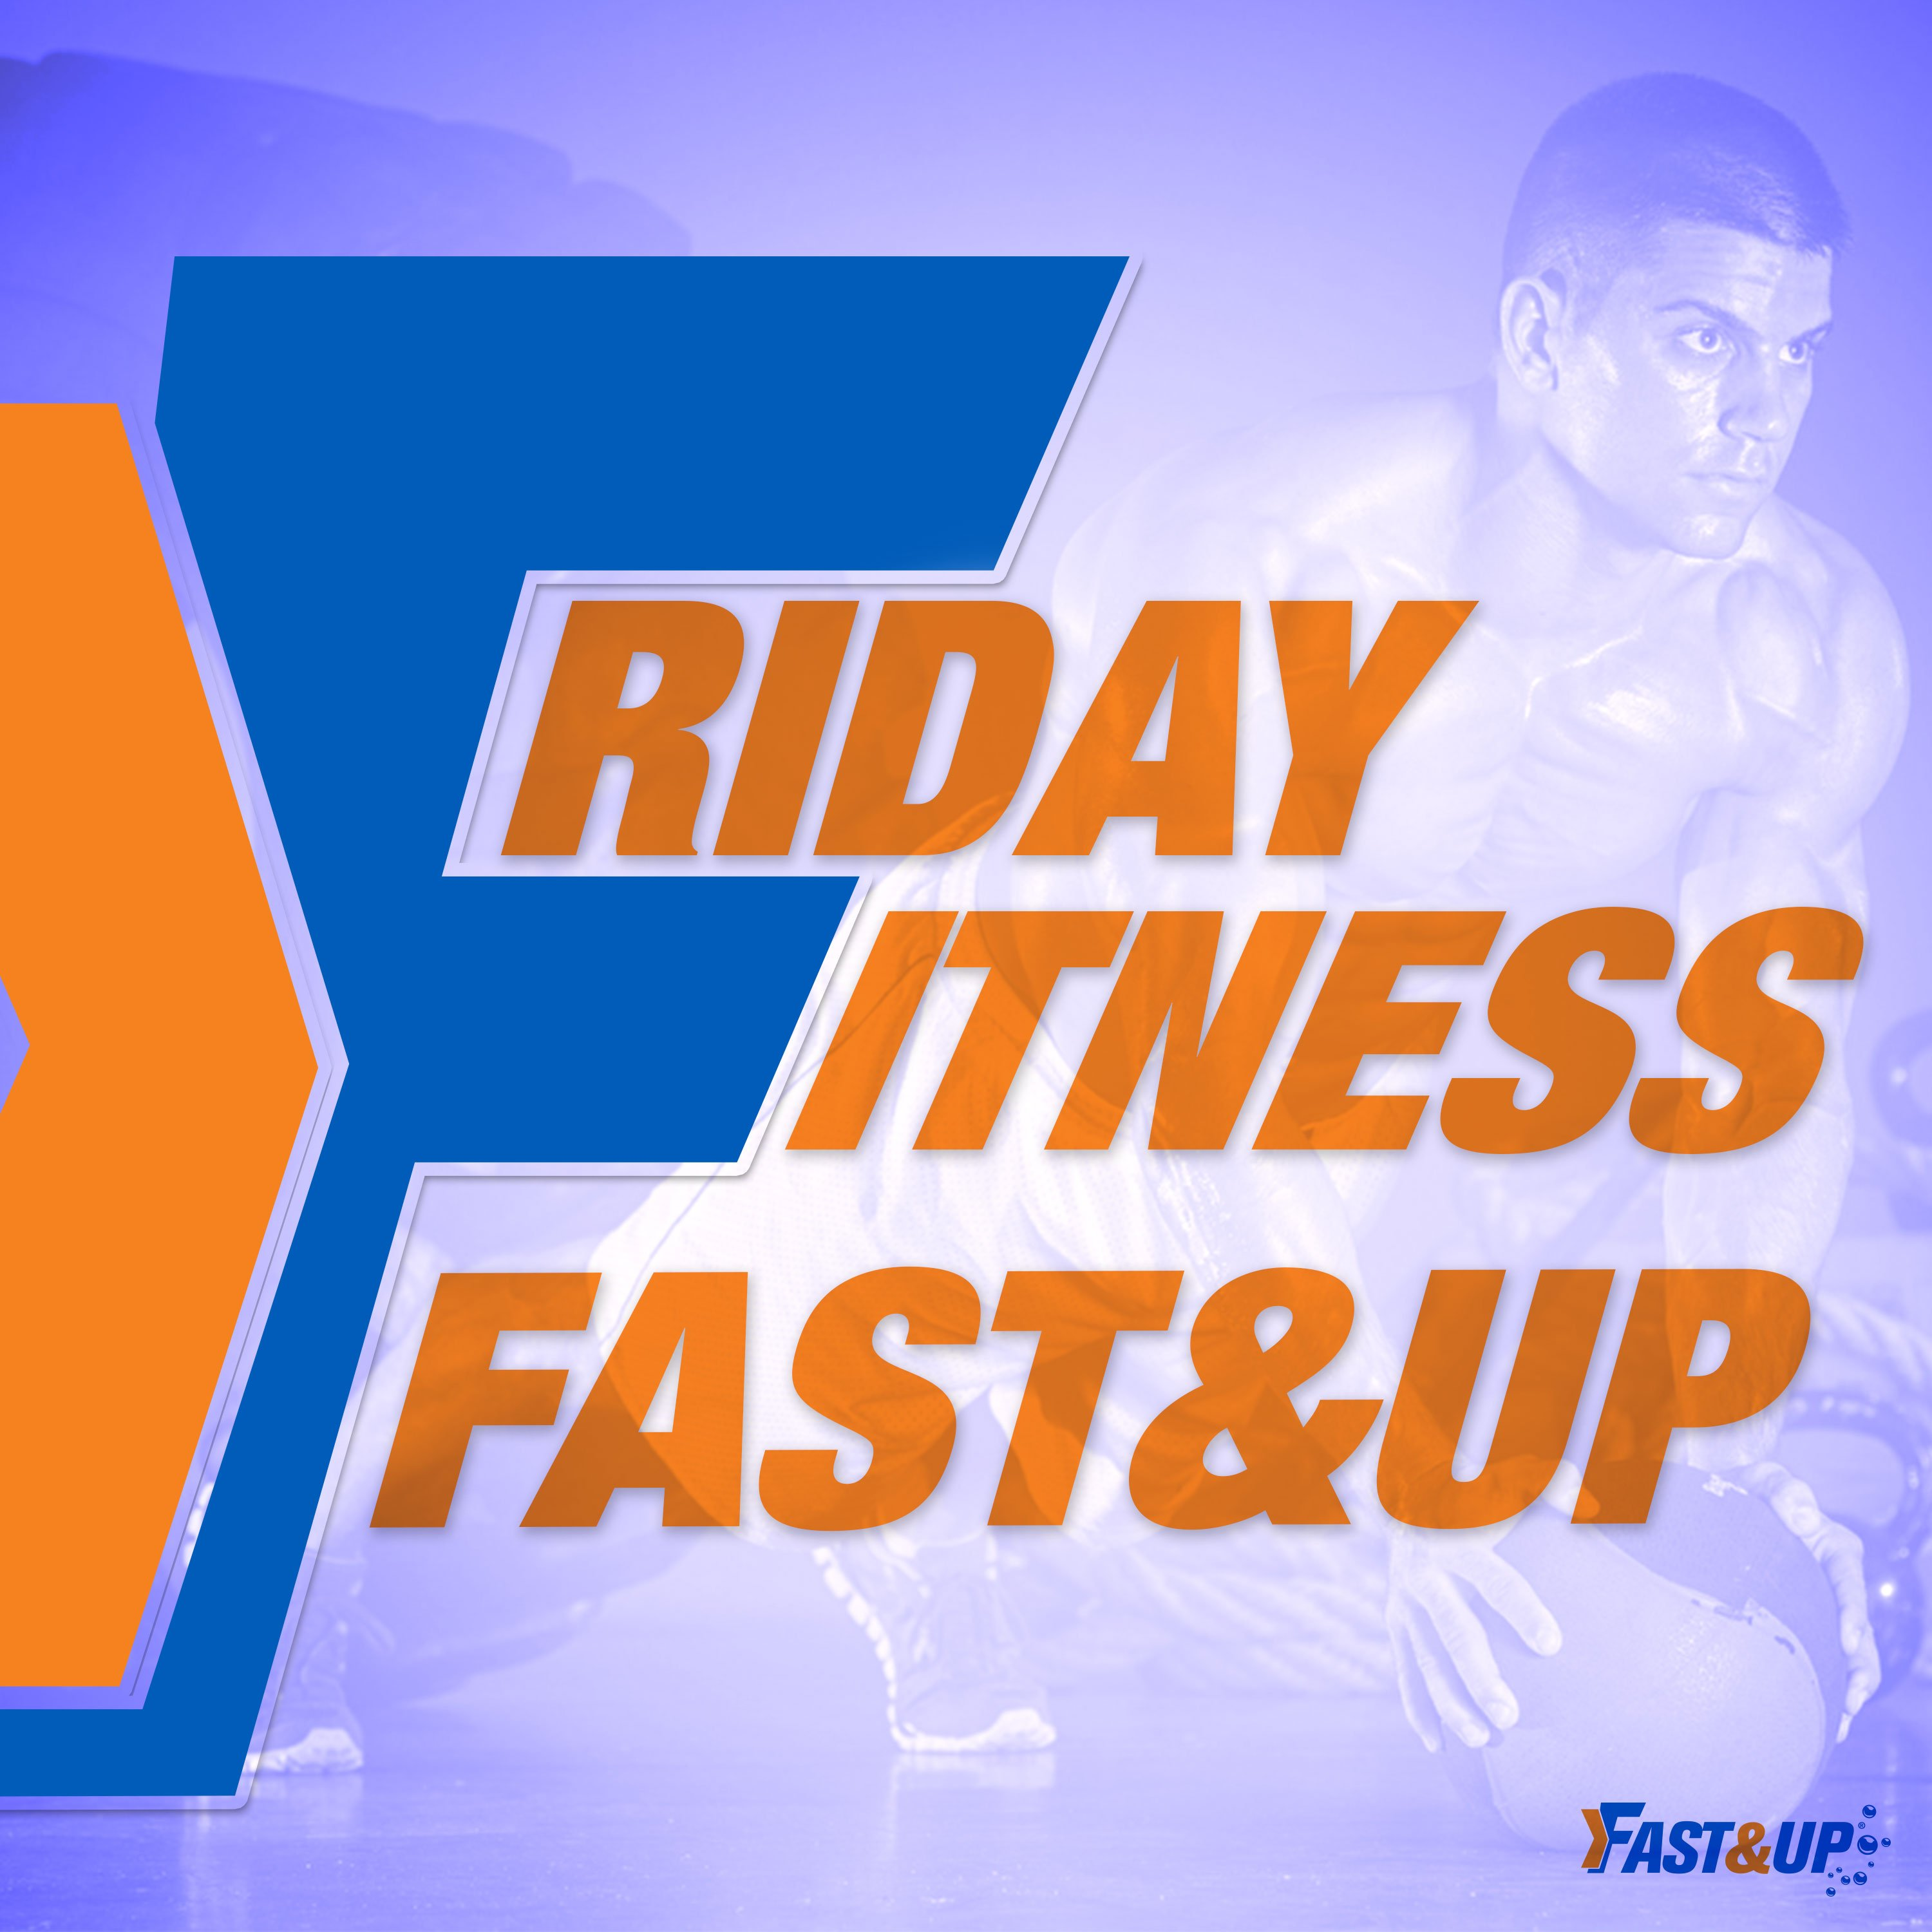 Friday Fitness Fast&Up